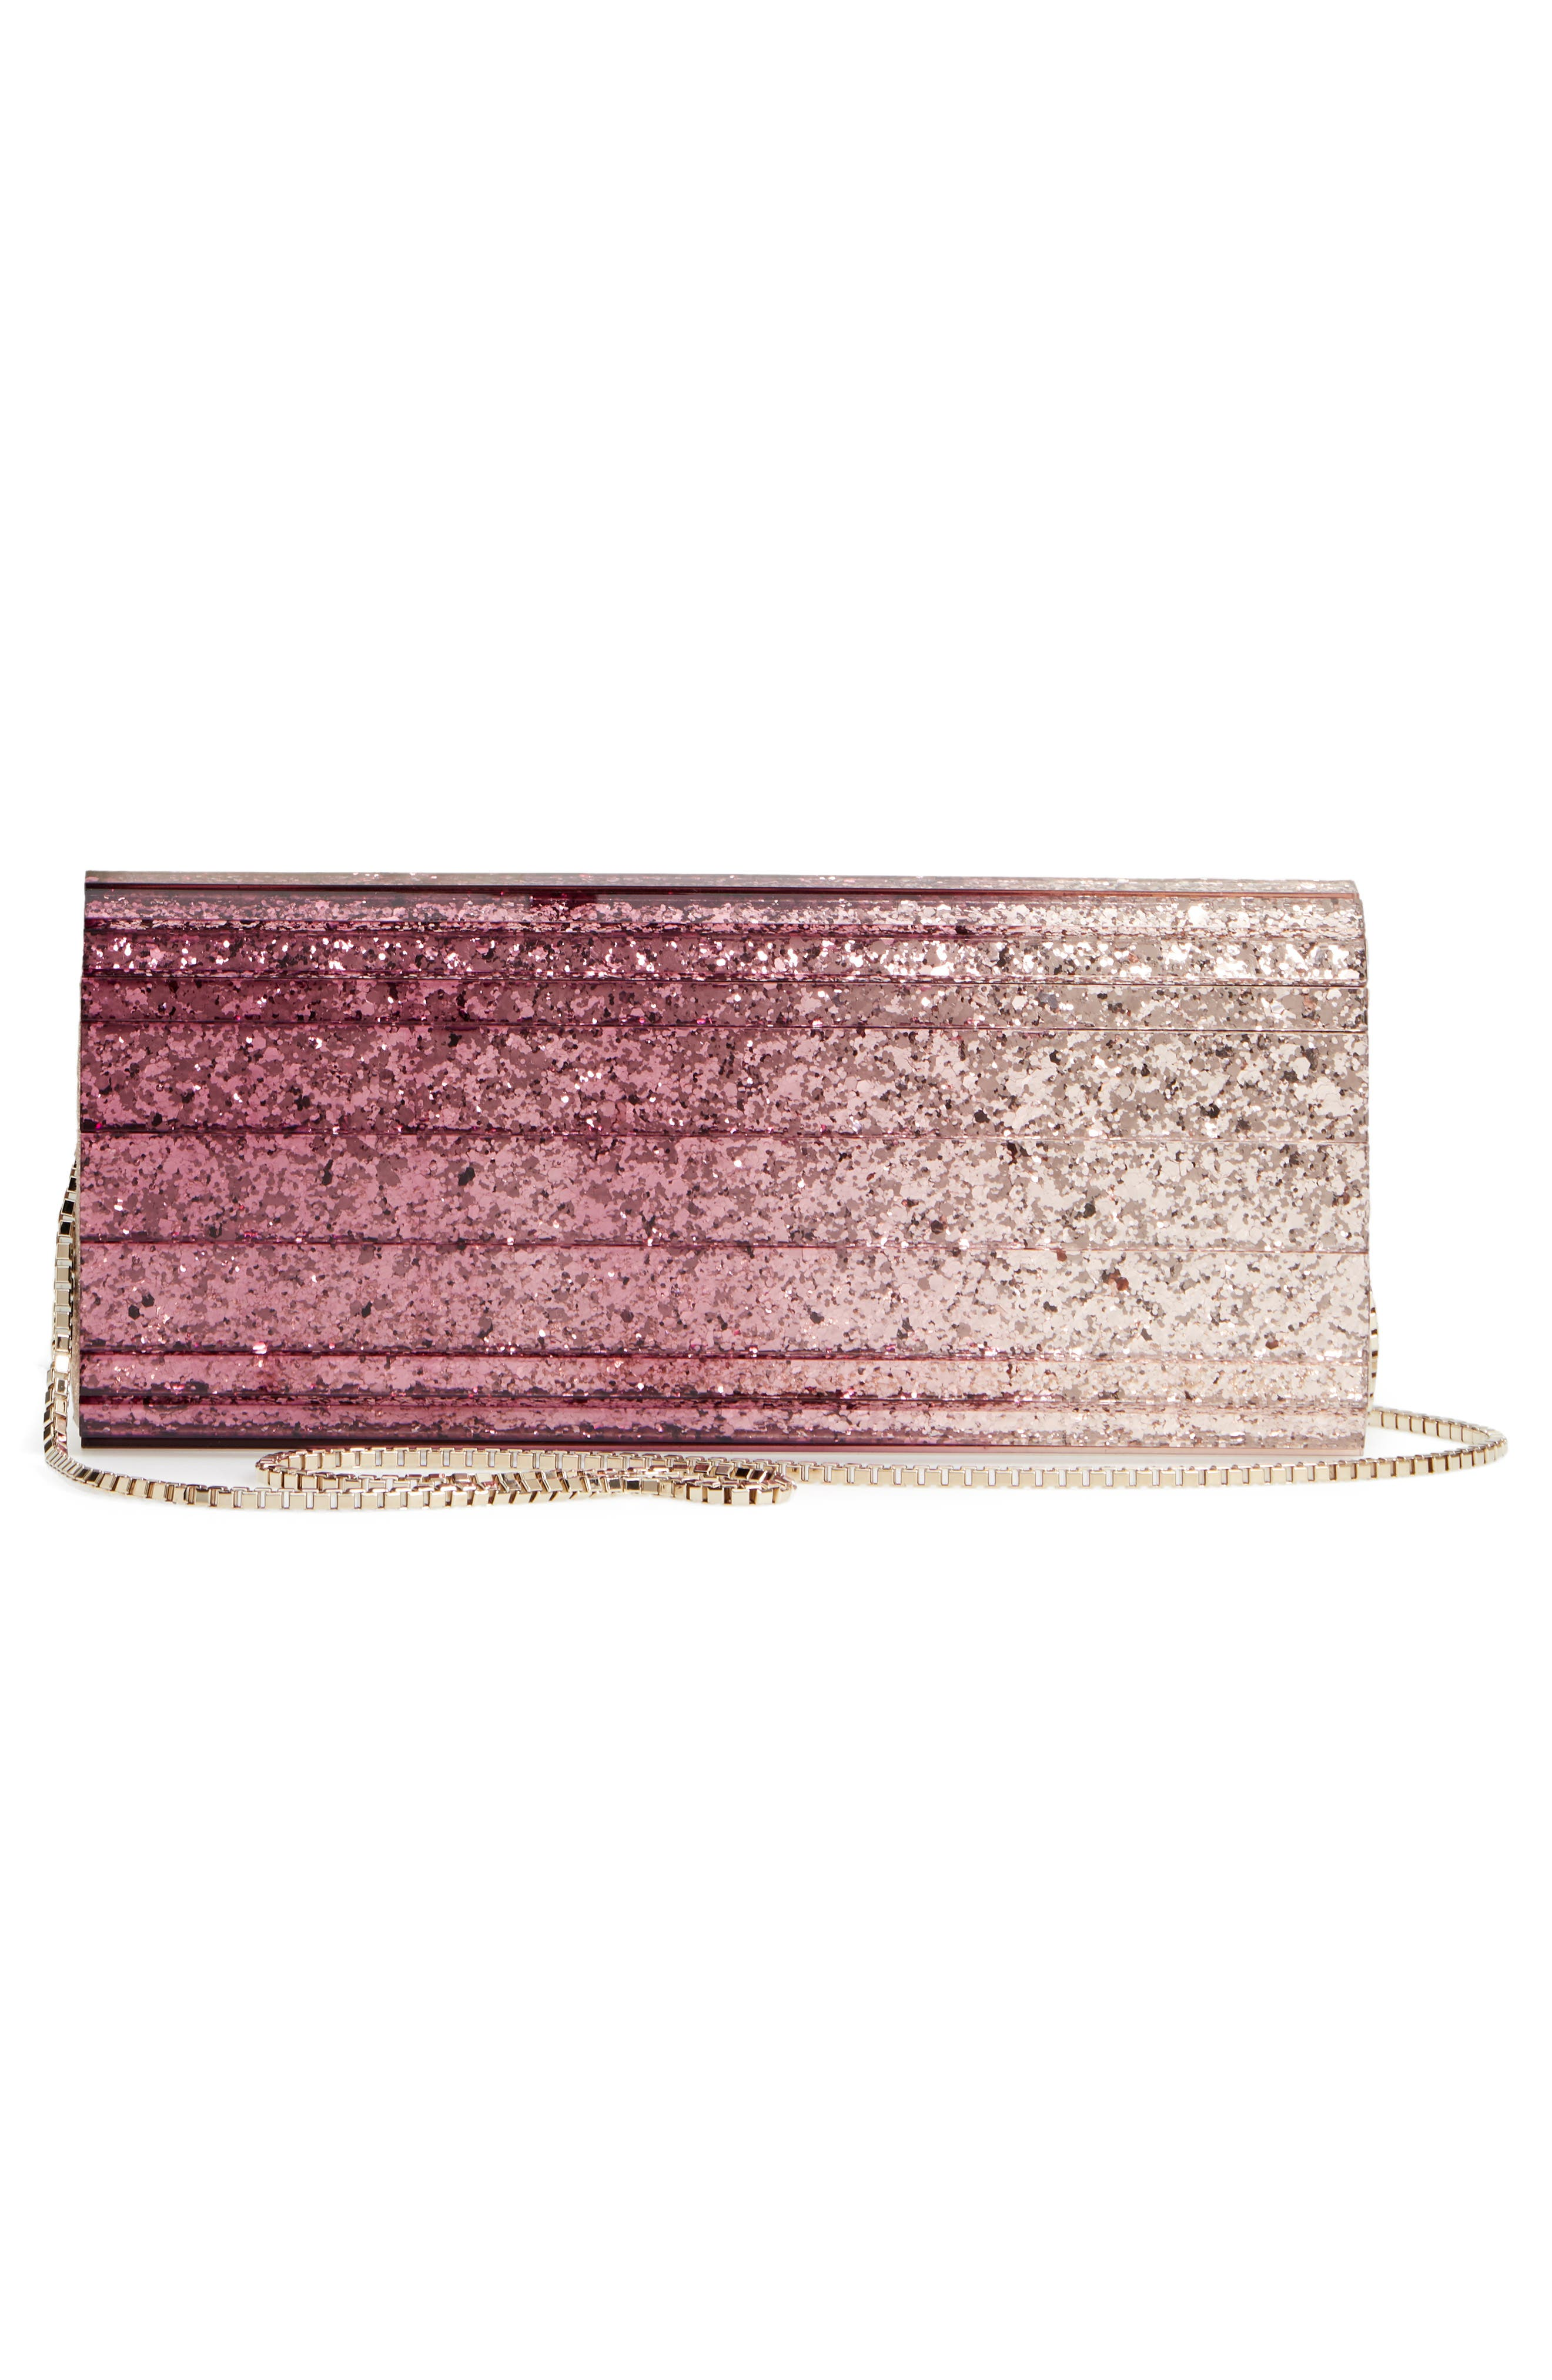 'Sweetie' Clutch,                             Alternate thumbnail 3, color,                             CHAMPAGNE/ GRAPE